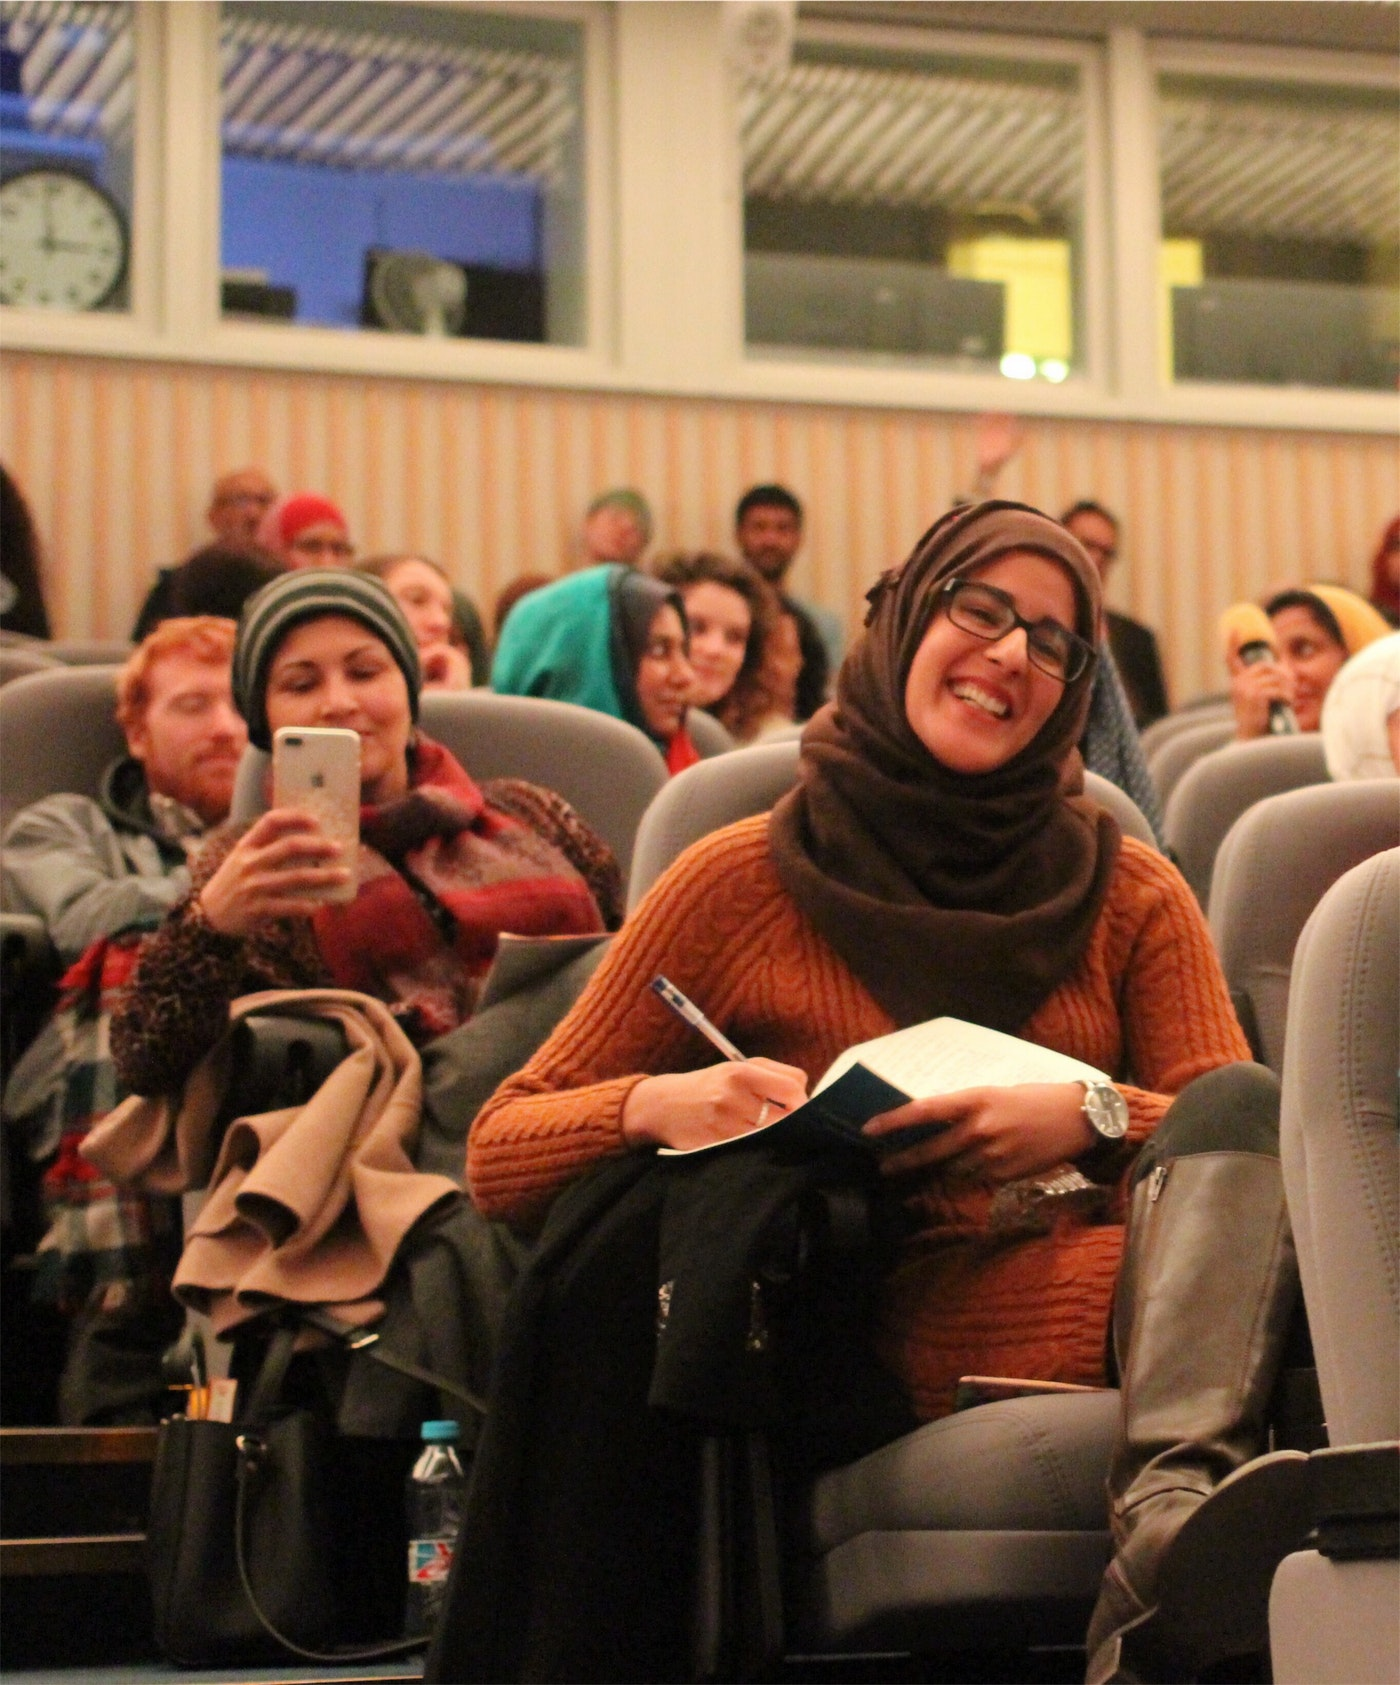 woman in a brown hijab, orange jumper and glasses laughing with a pen and notebook and sitting in a lecture theatre surrounded by other people.